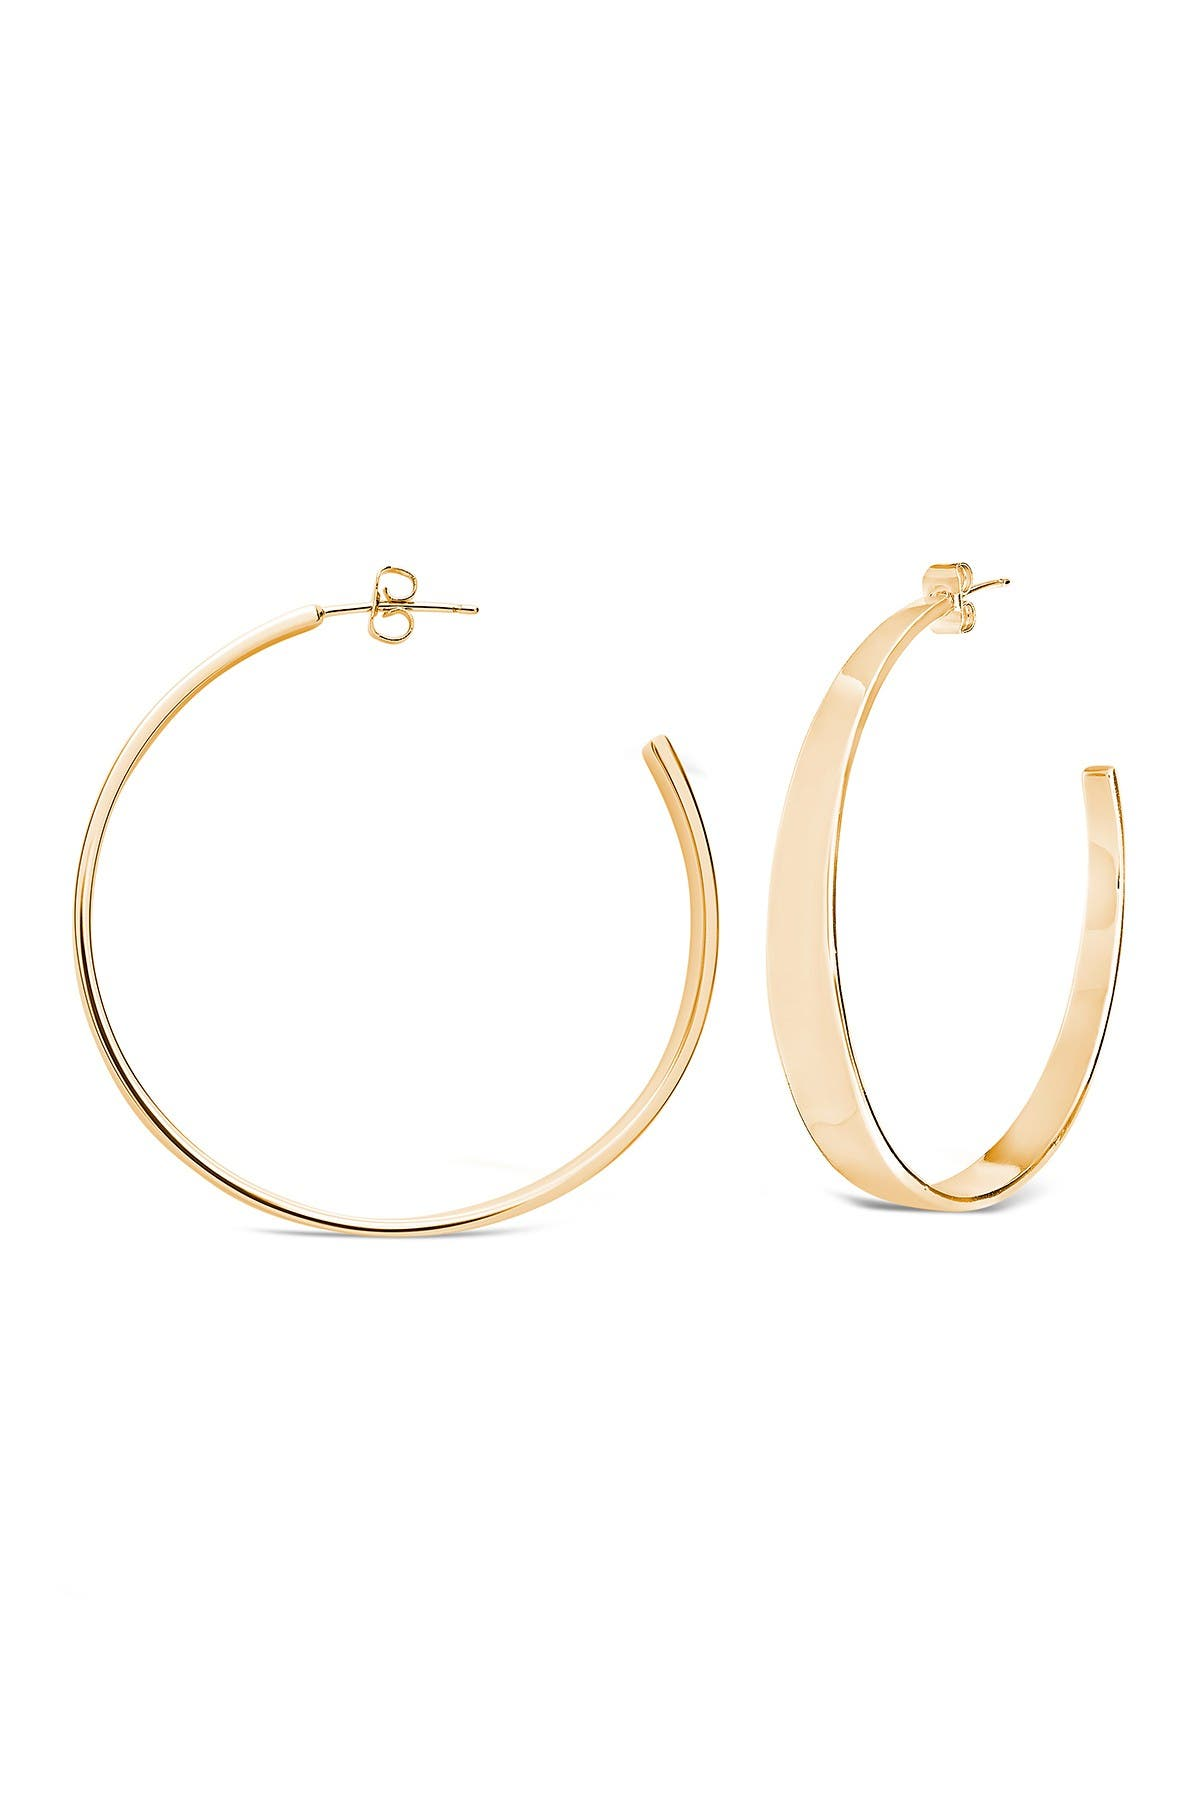 Image of Sterling Forever Graduated Hoop Earrings